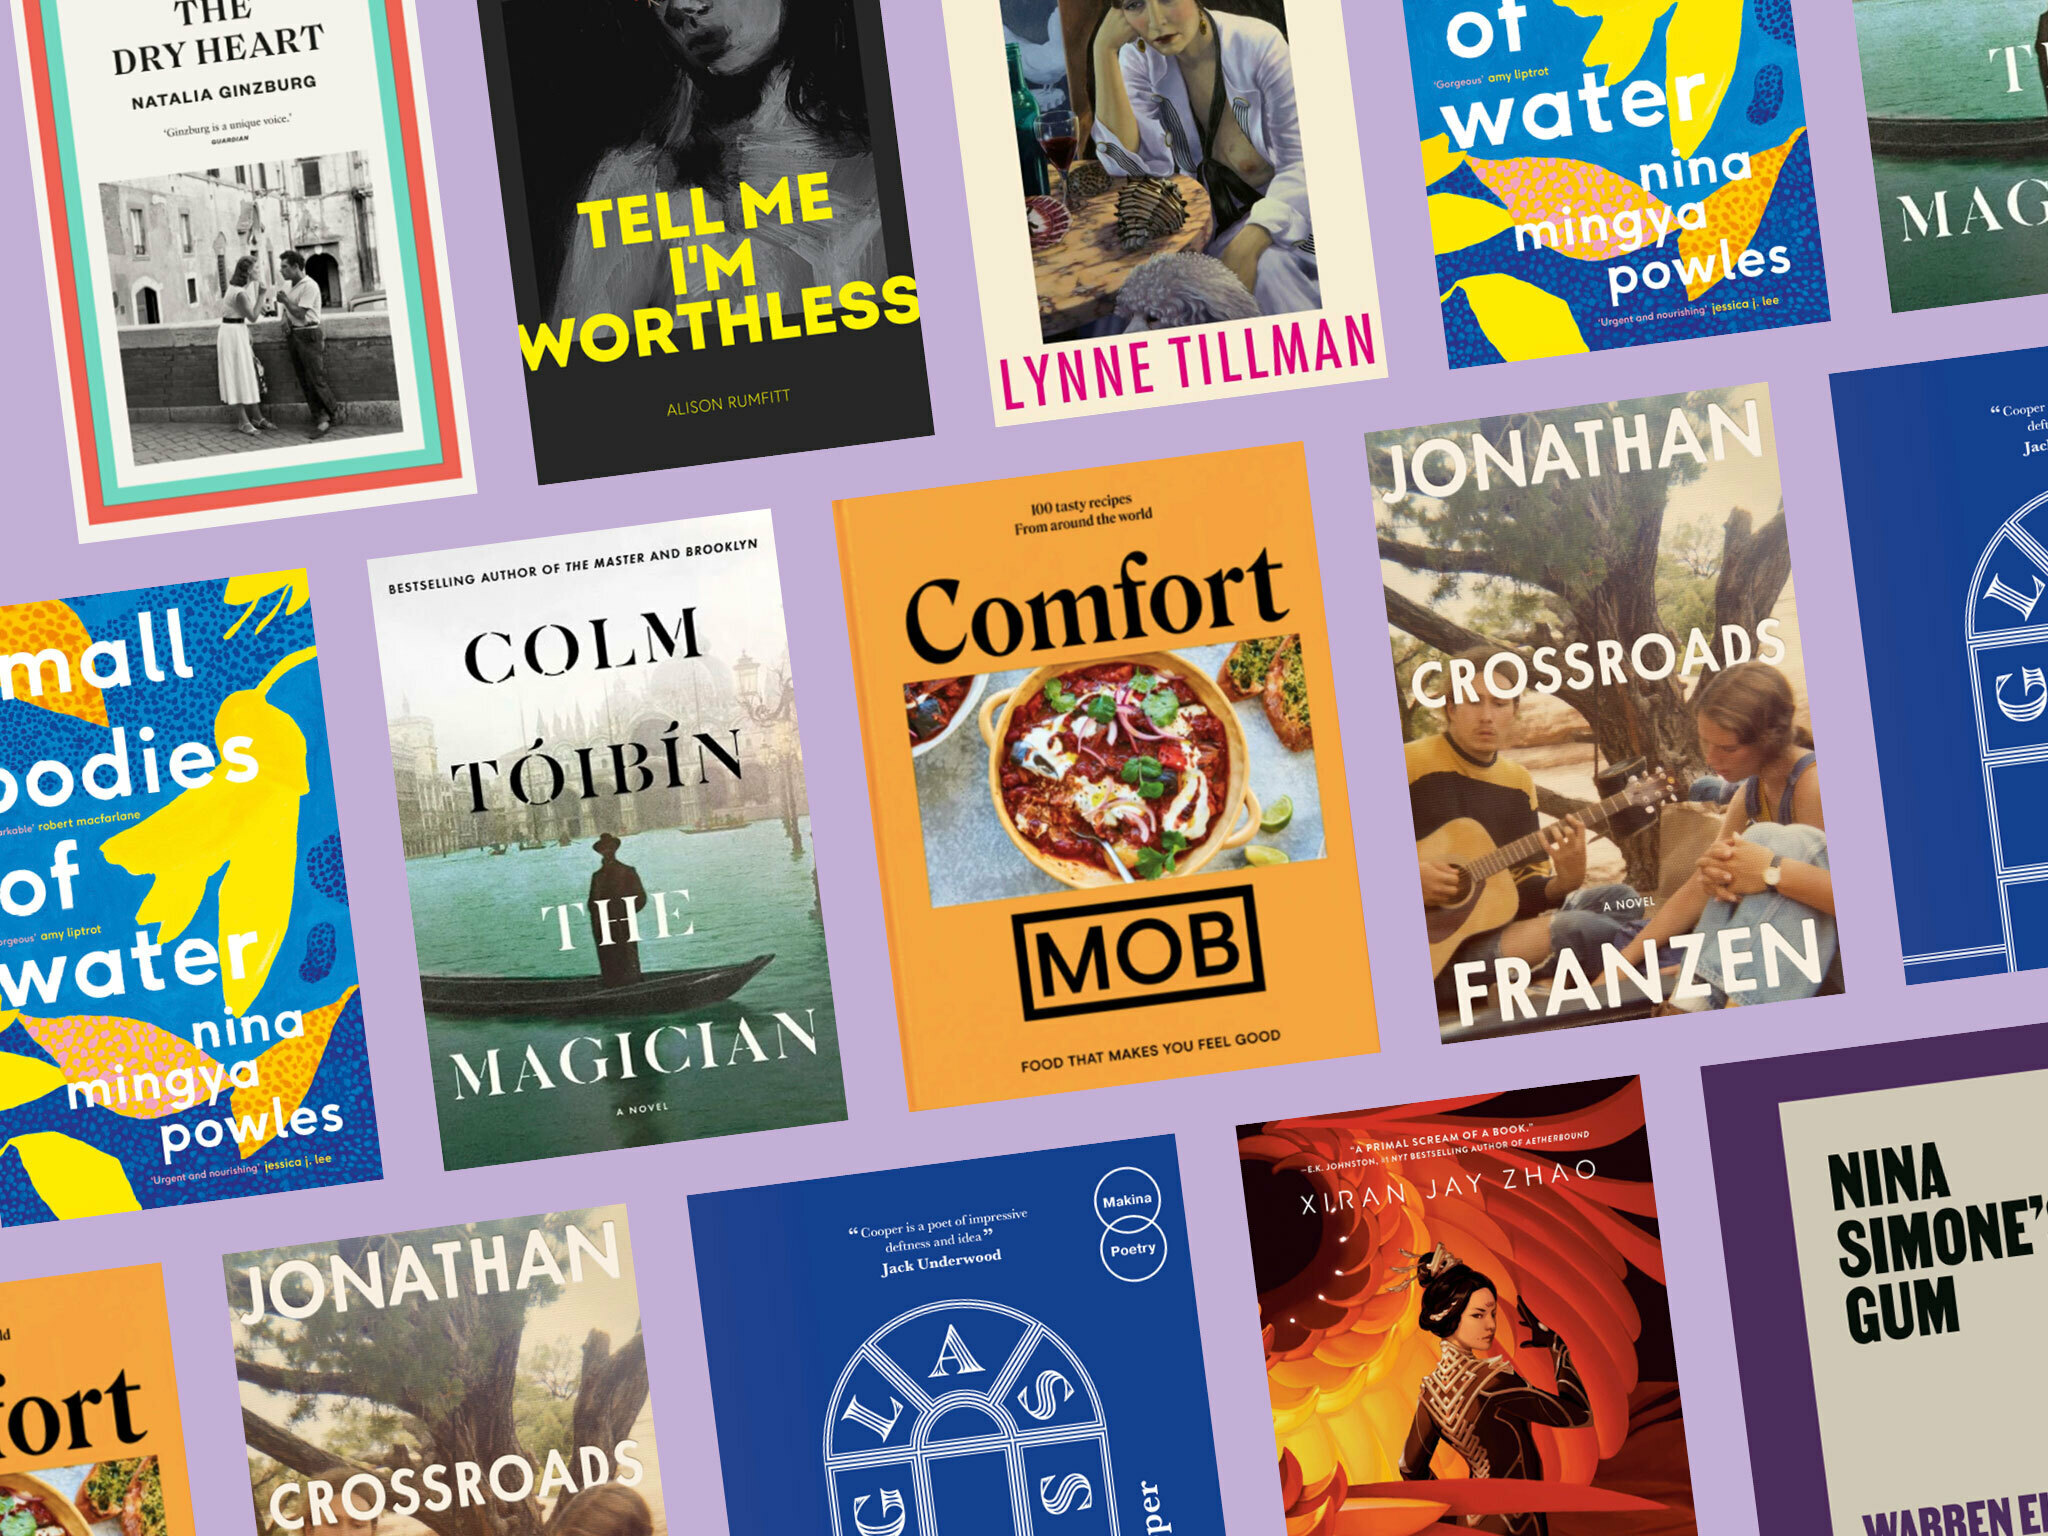 15 great new books you need to know about